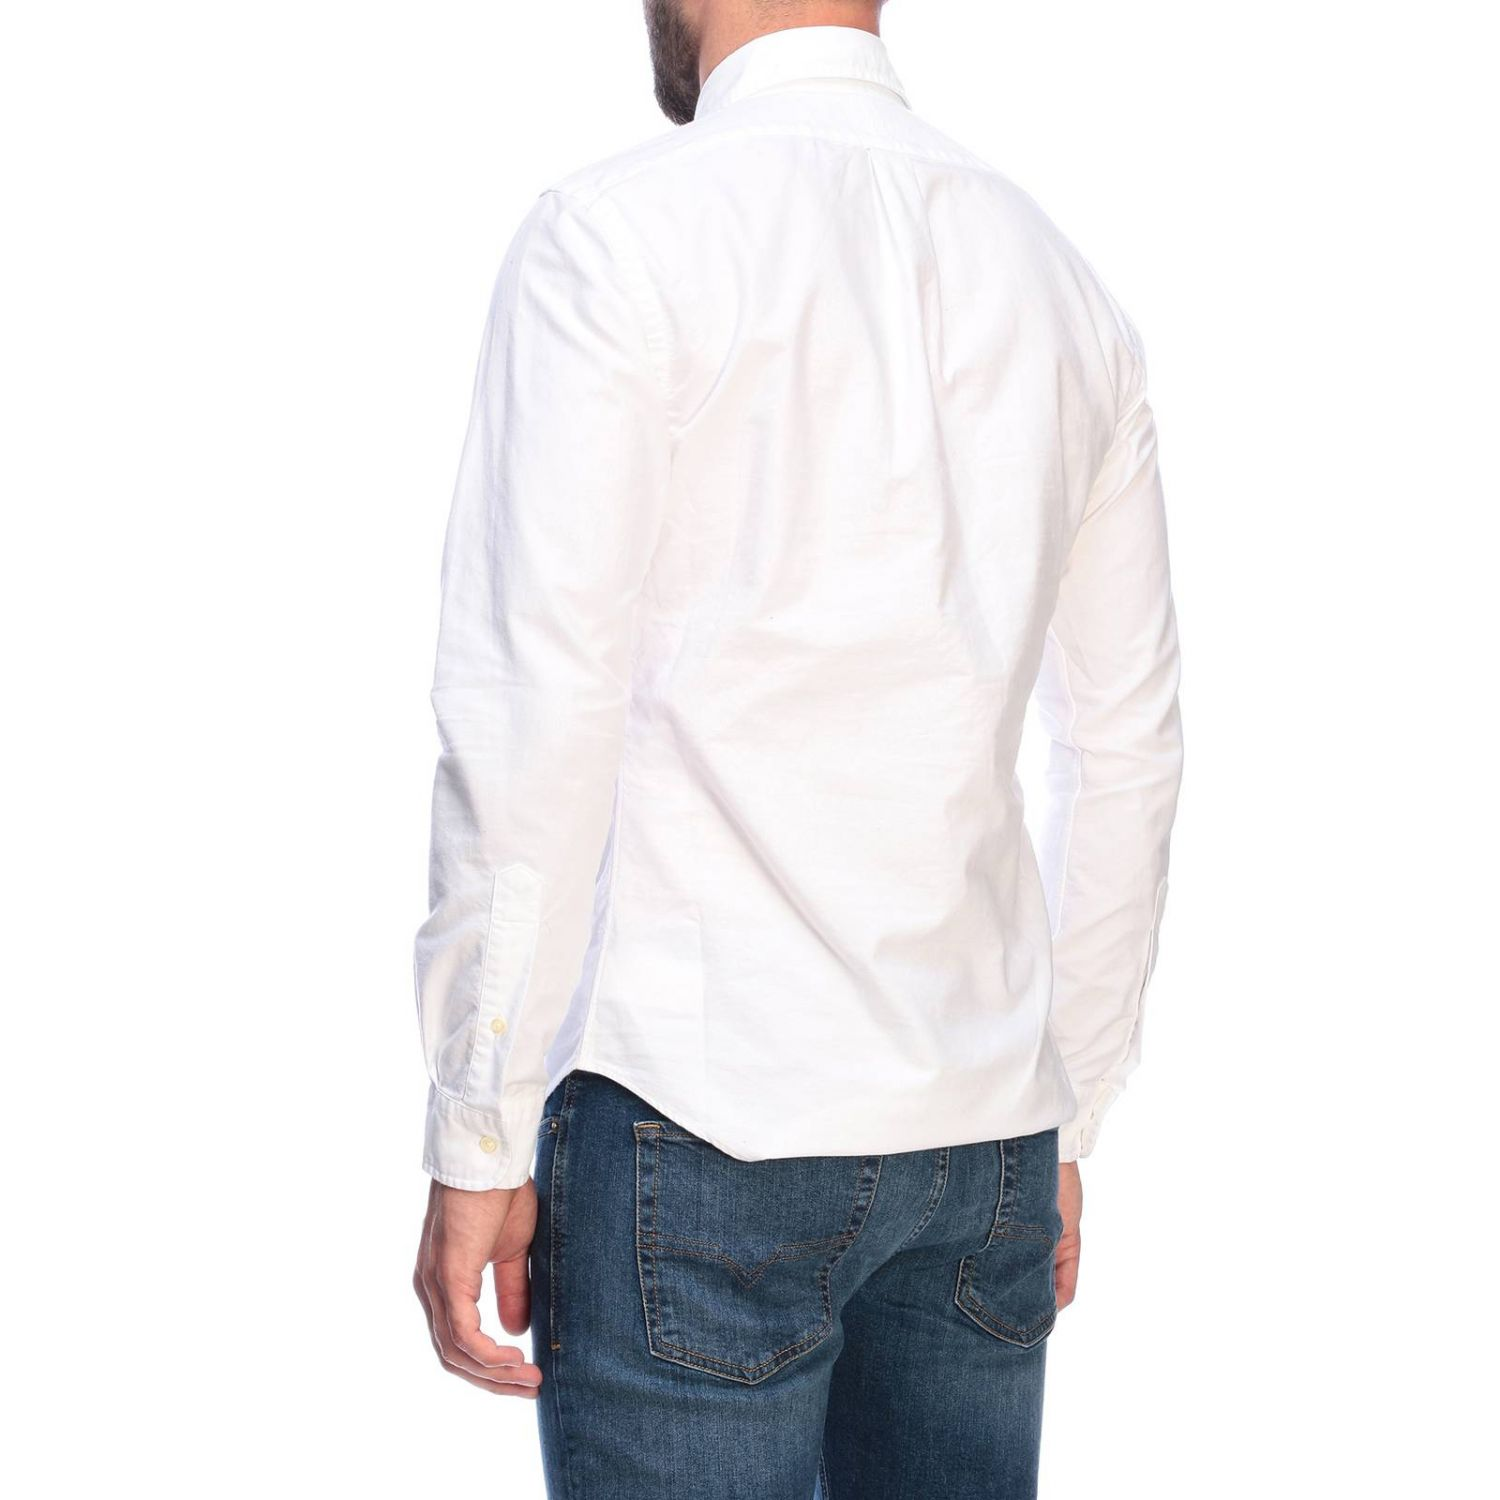 Chemise Oxford slim fit avec col button down et logo Polo Ralph Lauren blanc 2